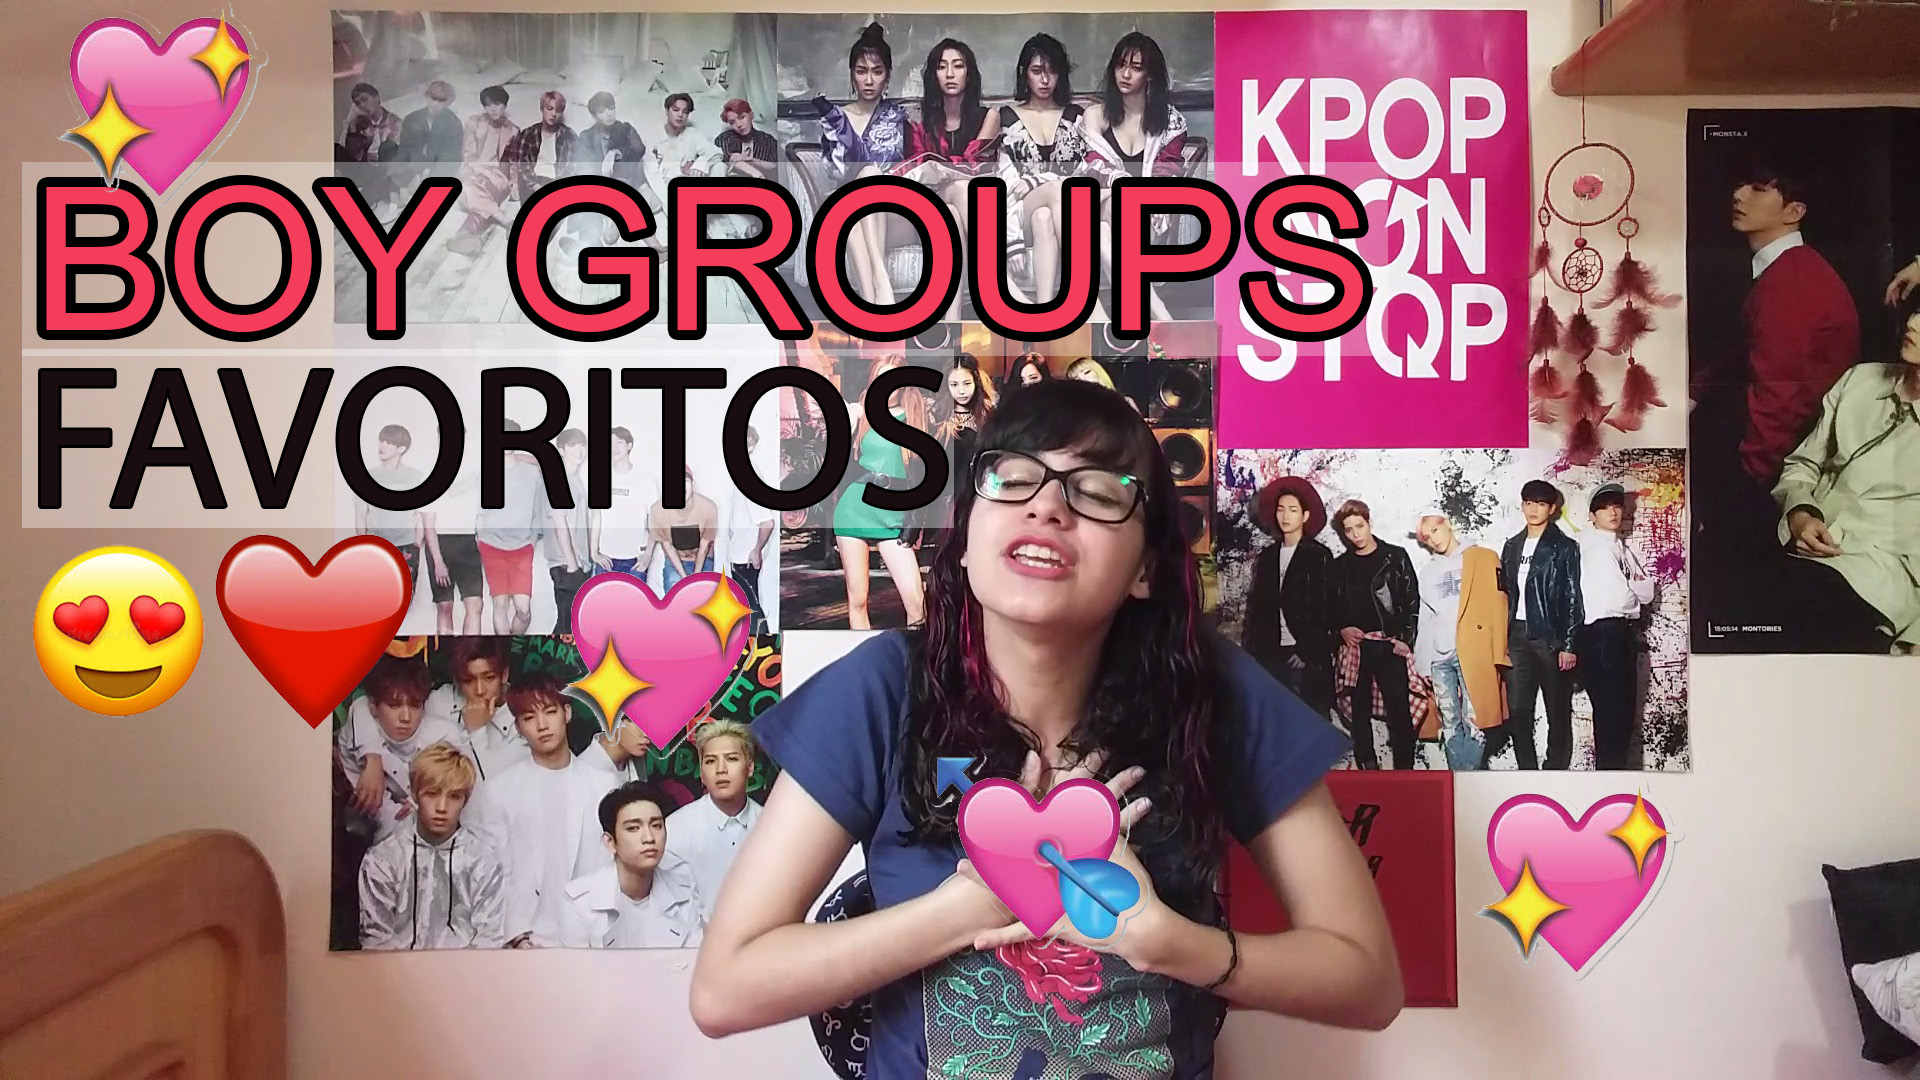 TOP 11 Boy Groups preferidos + indicações